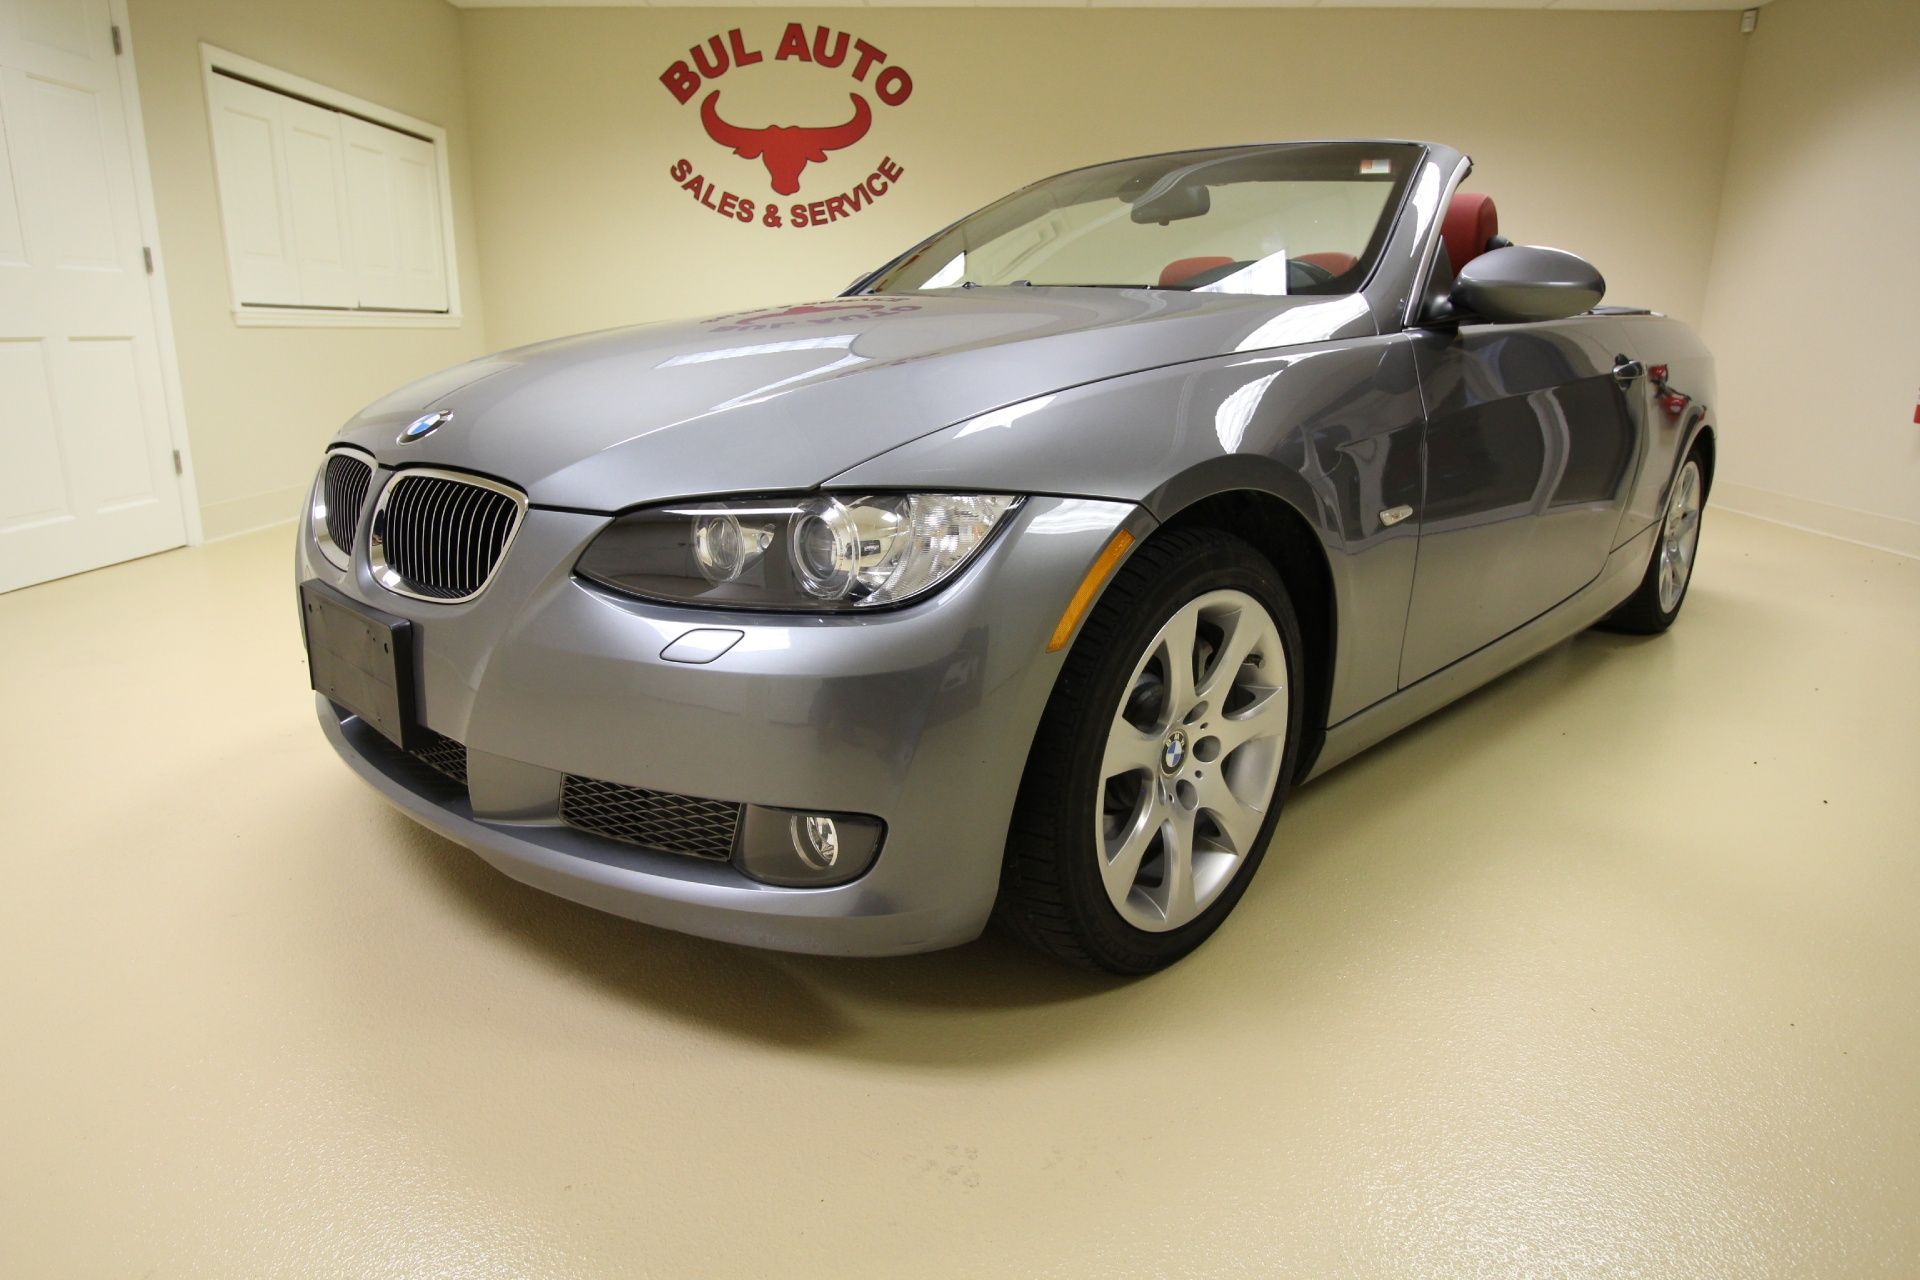 Cars for Sale Near Me with Low Mileage Lovely 2007 Bmw 3 Series 335i Rare 6 Speed Manual Super Low Miles